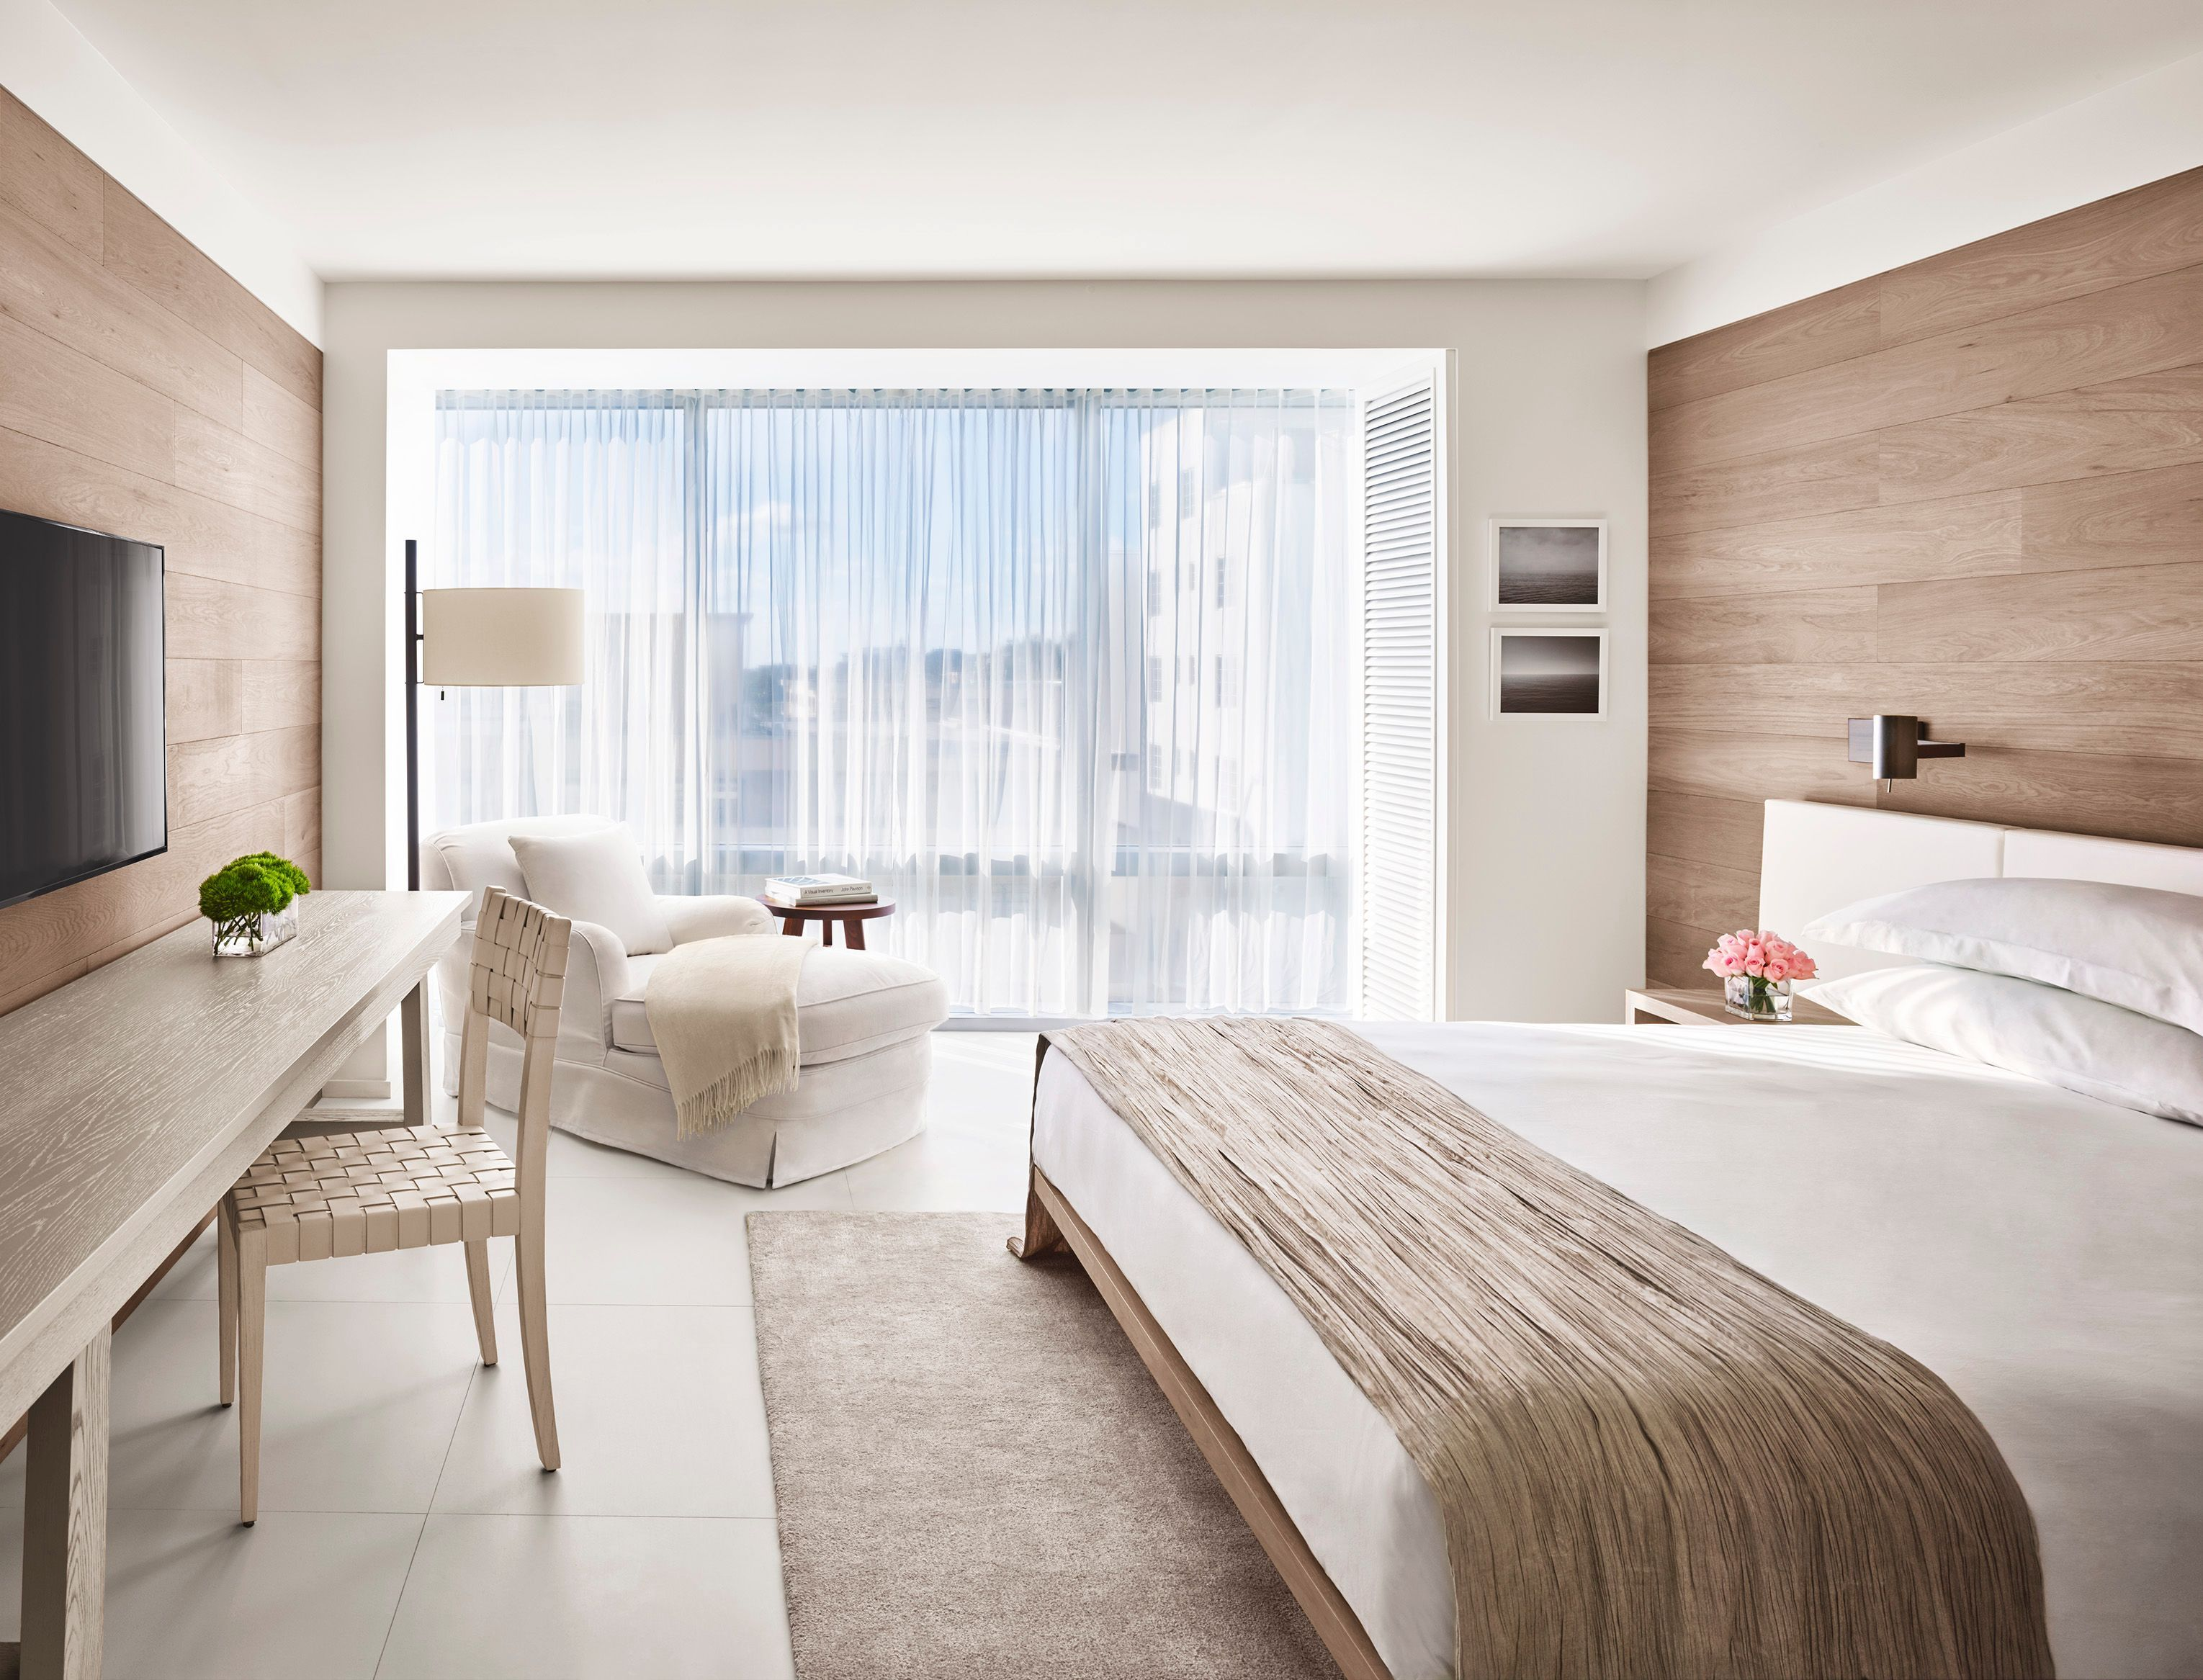 Yabu pushelberg the miami beach edition bedroom luxury for Luxury hotel boutique